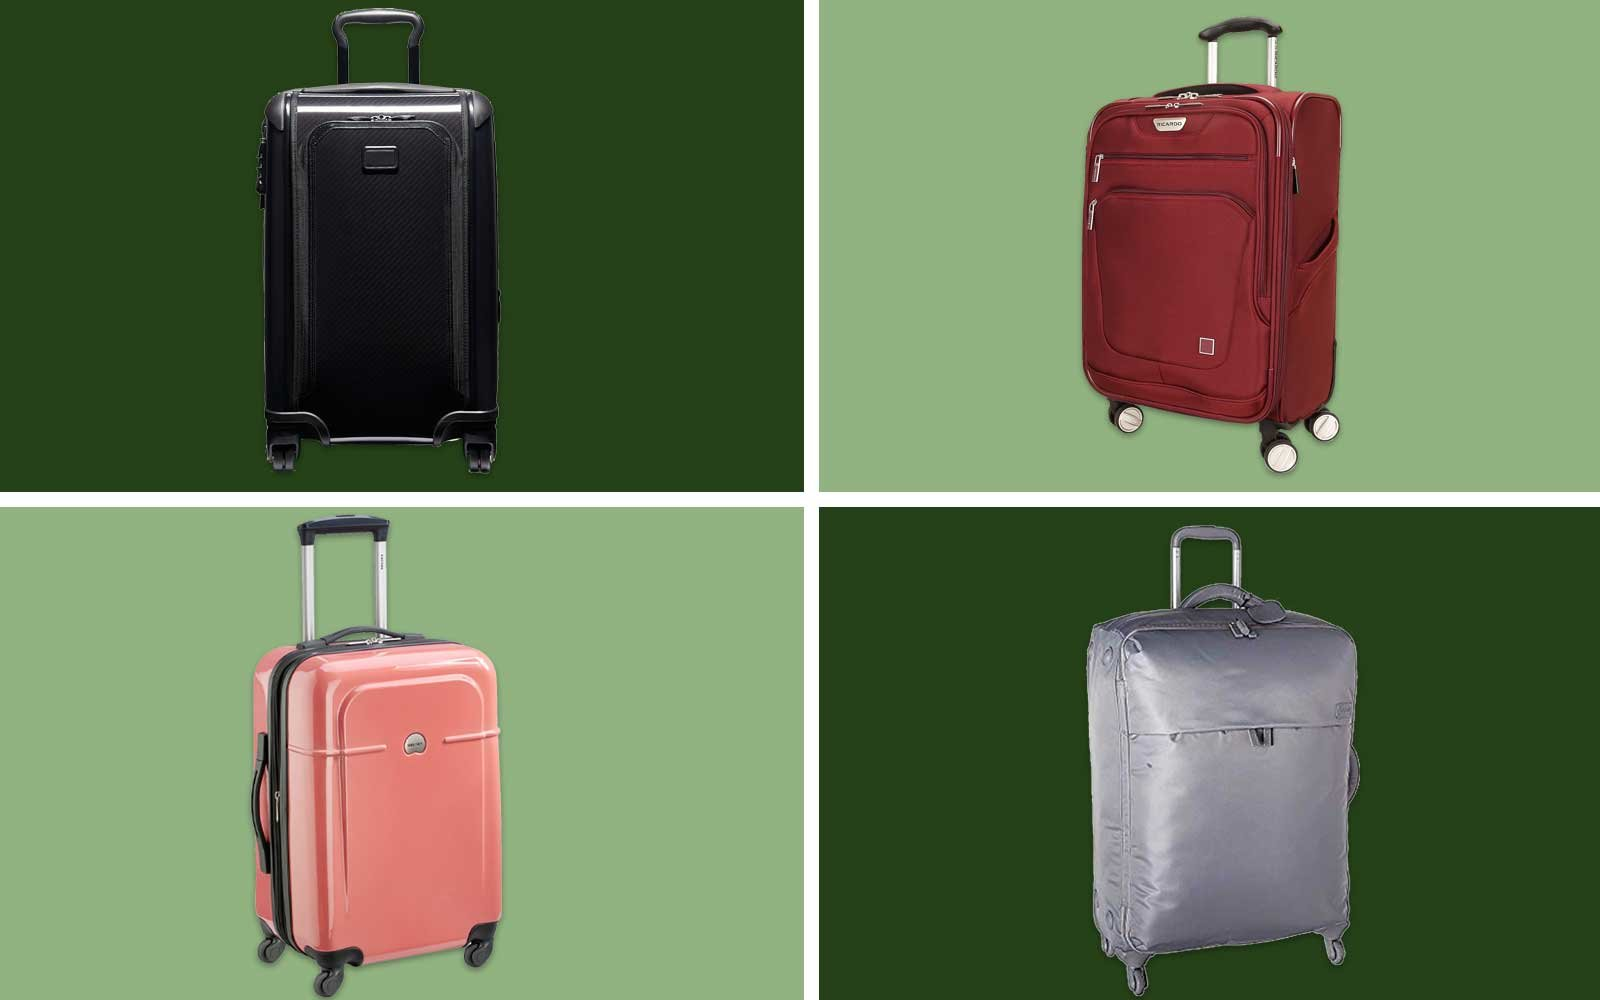 cyber-monday-luggage-LUGCM1019